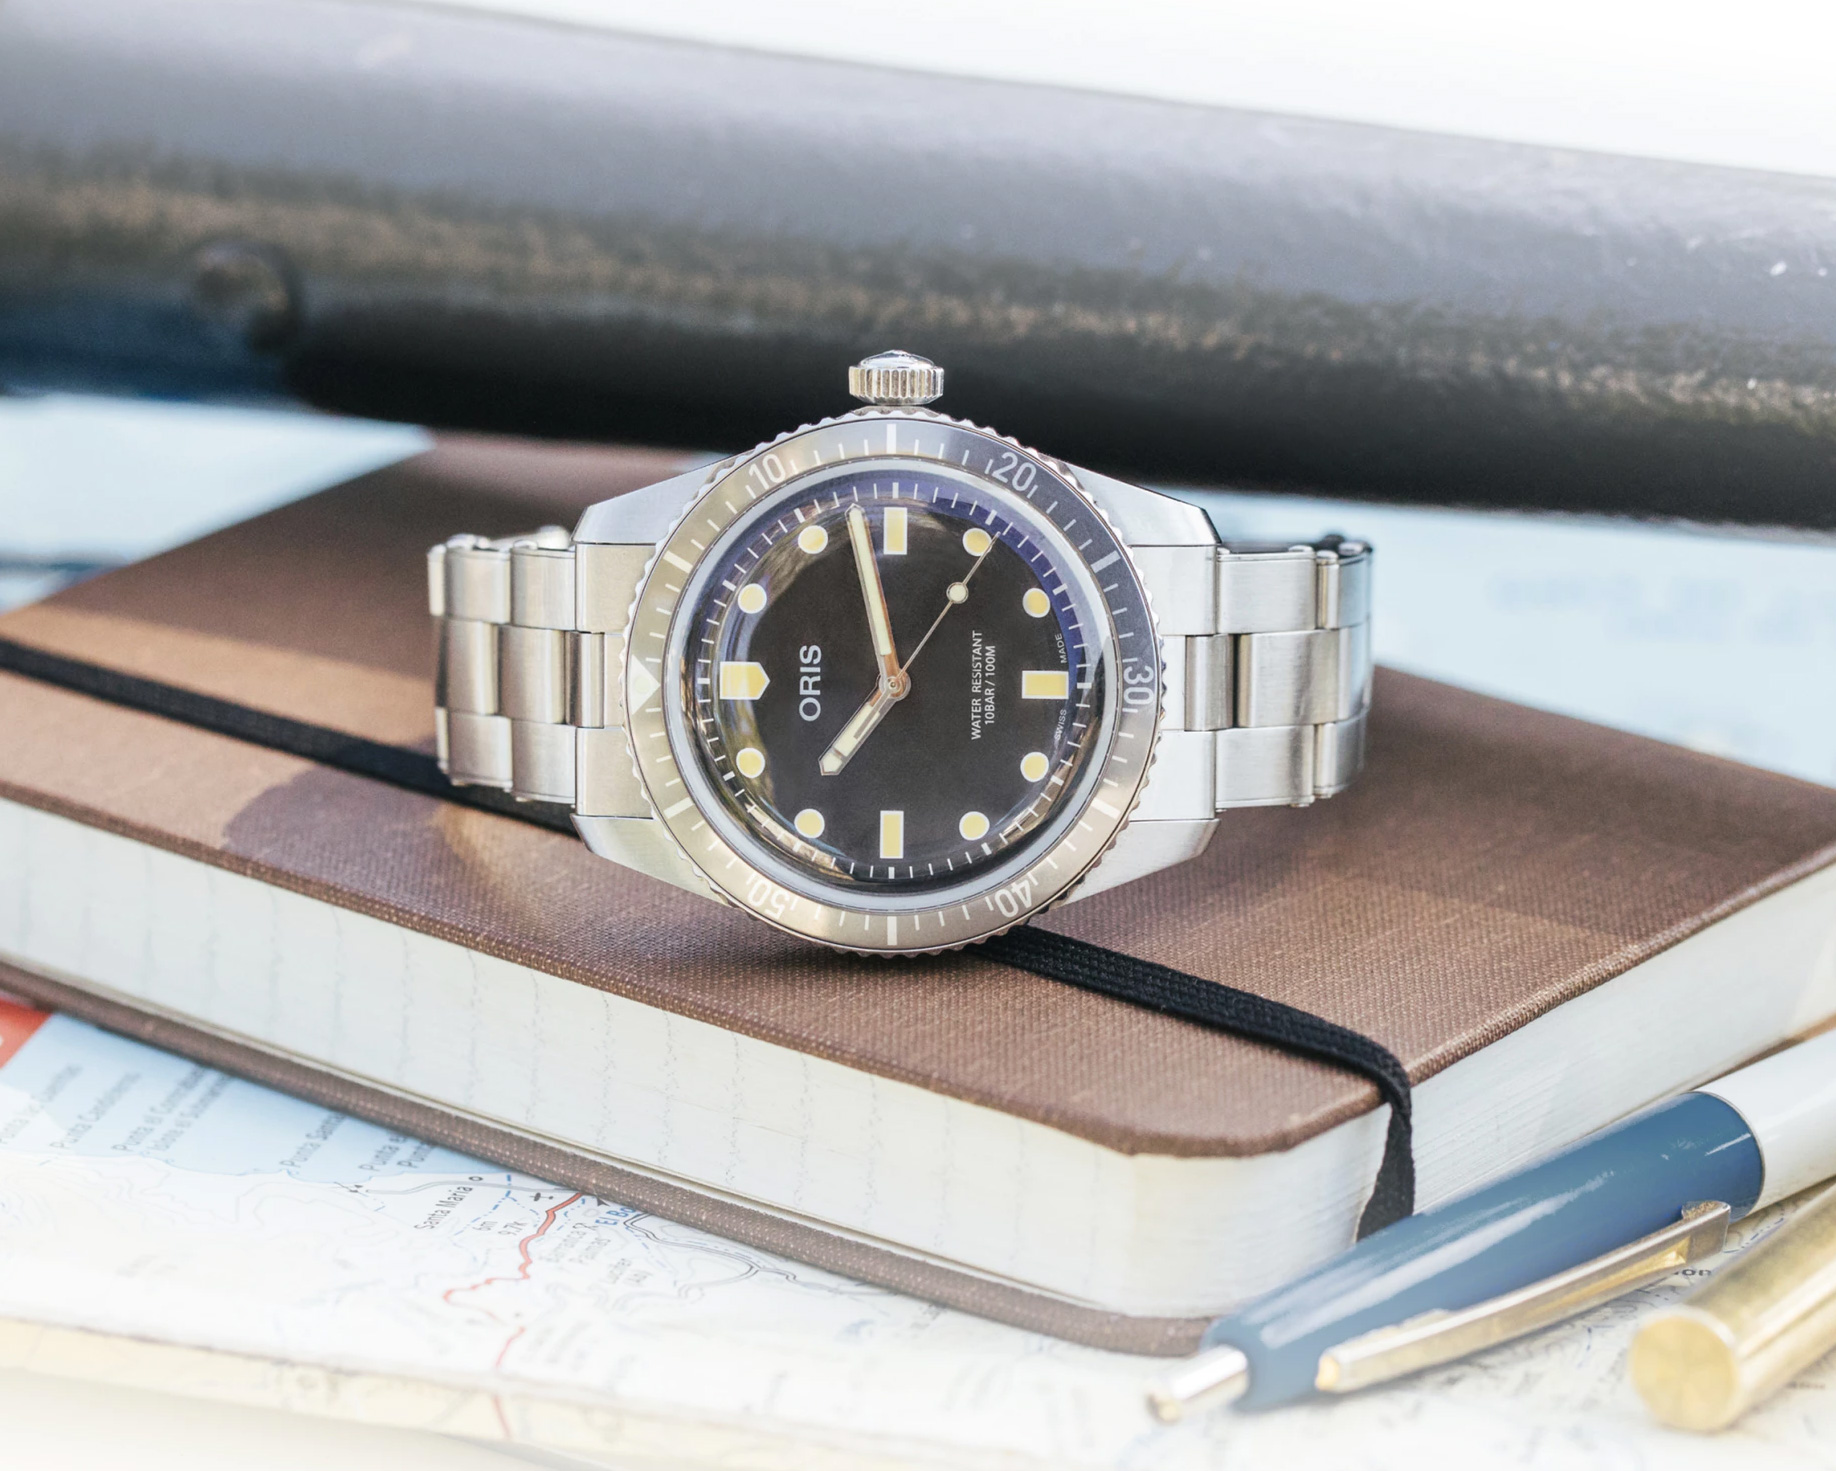 Hodinkee & Oris Team Up On Limited Edition Dive Watch at werd.com